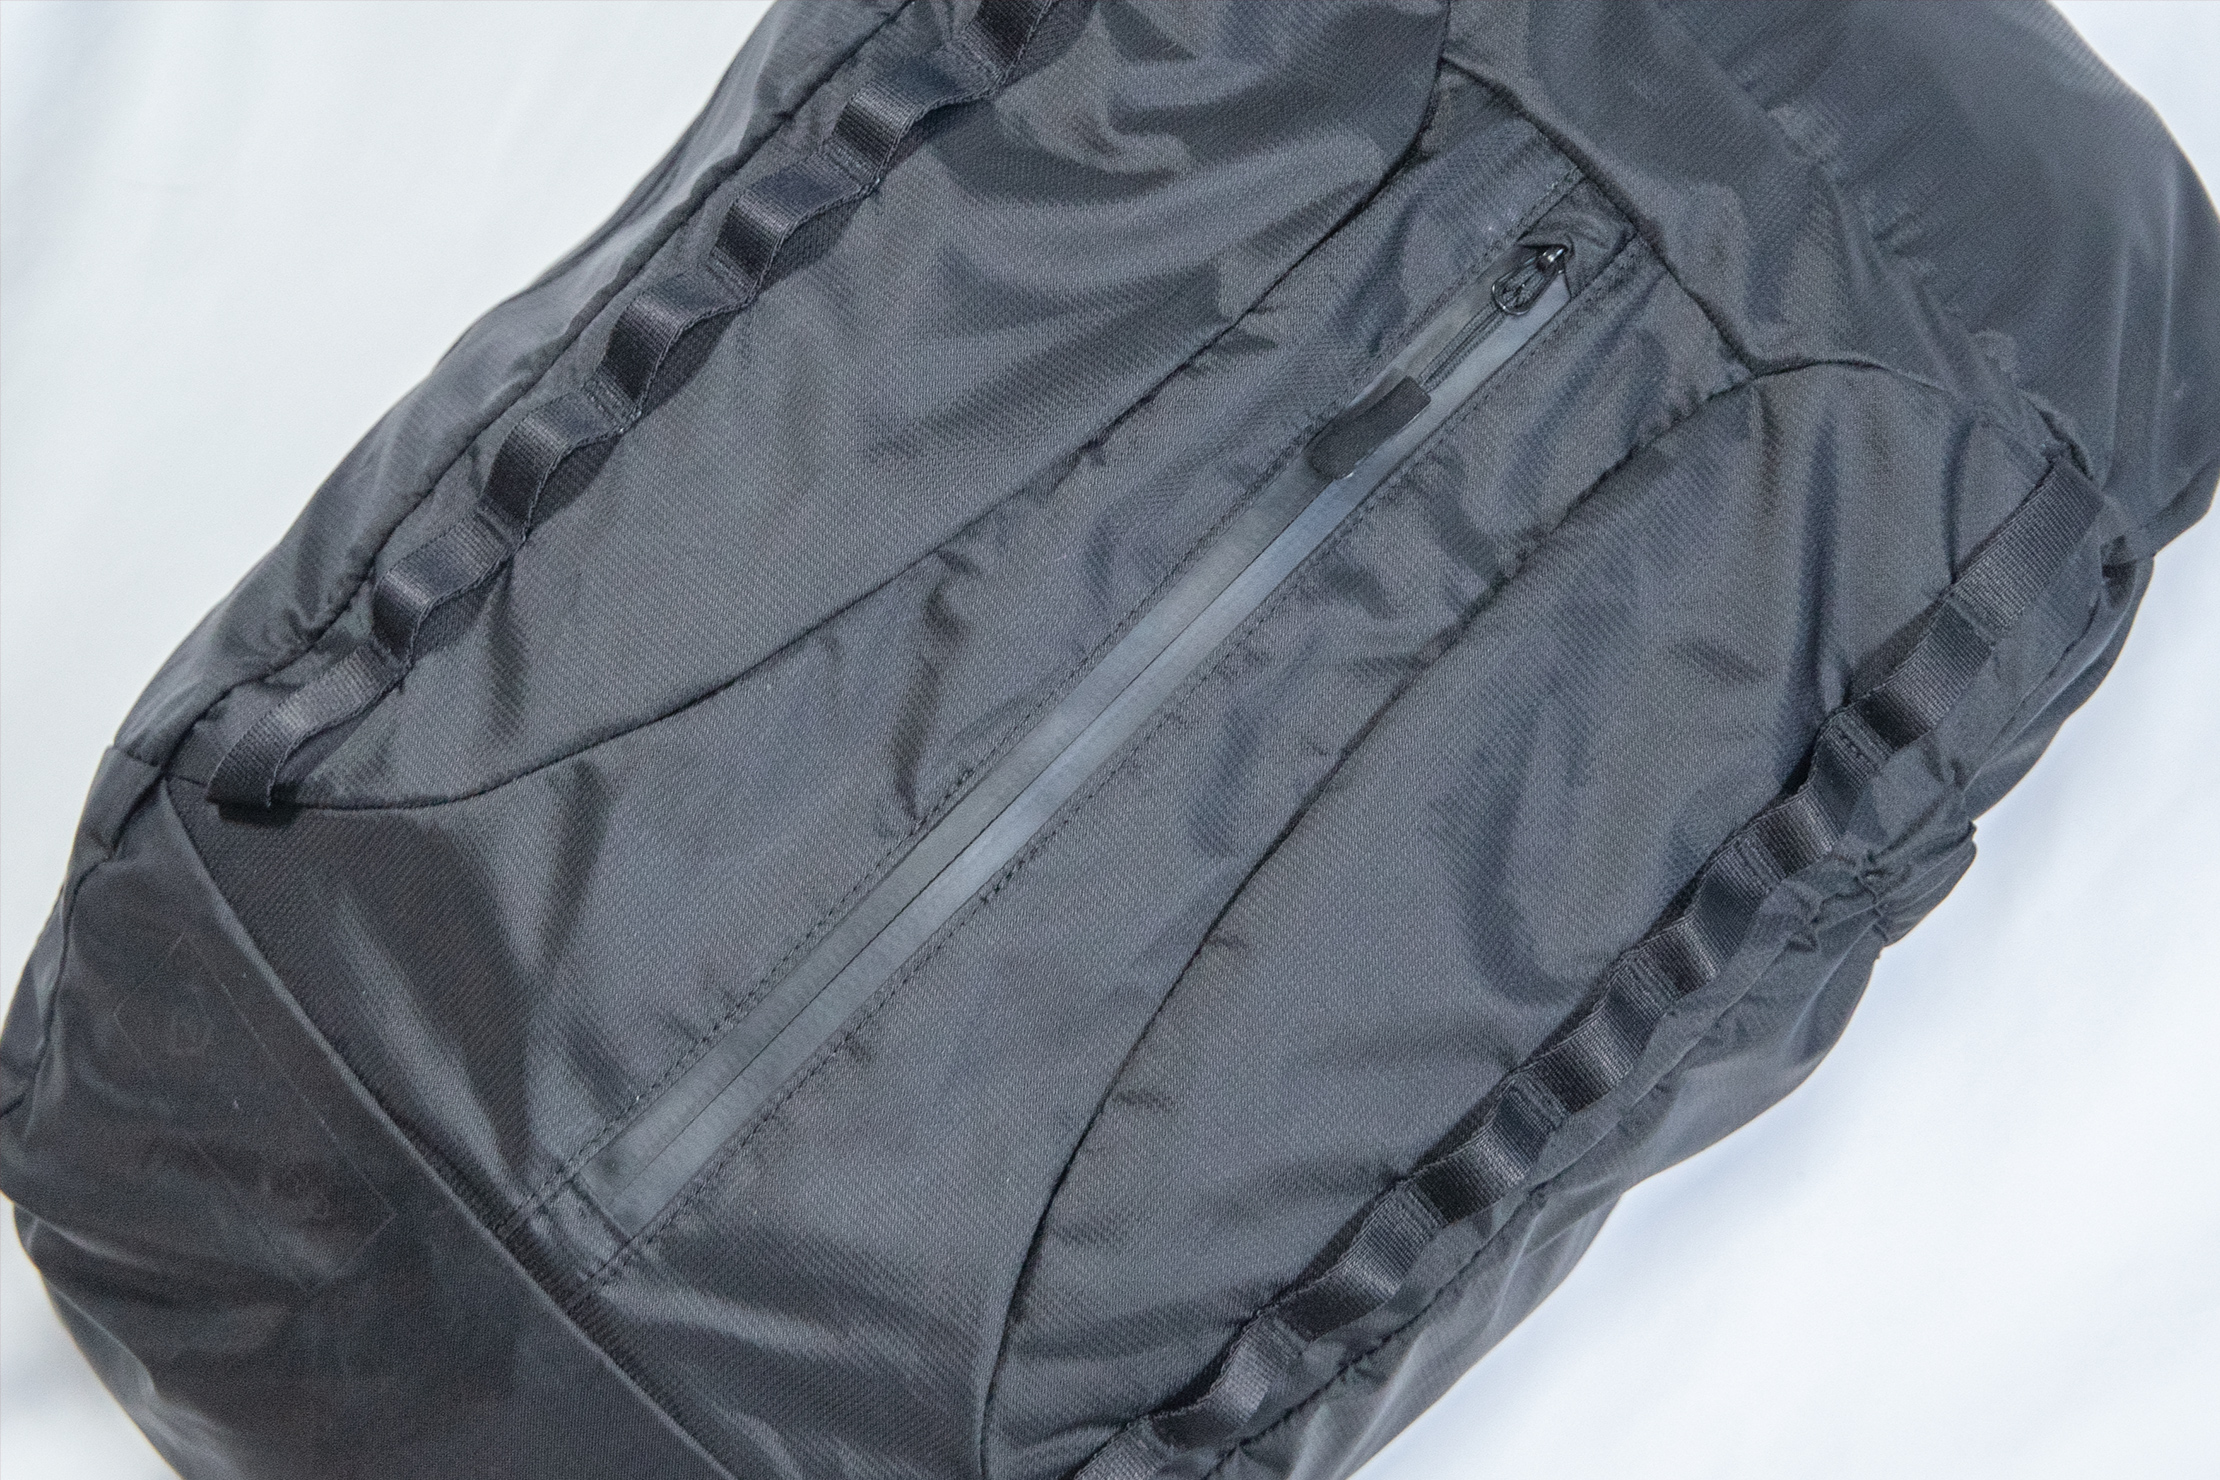 WANDRD VEER 18L Packable Pag